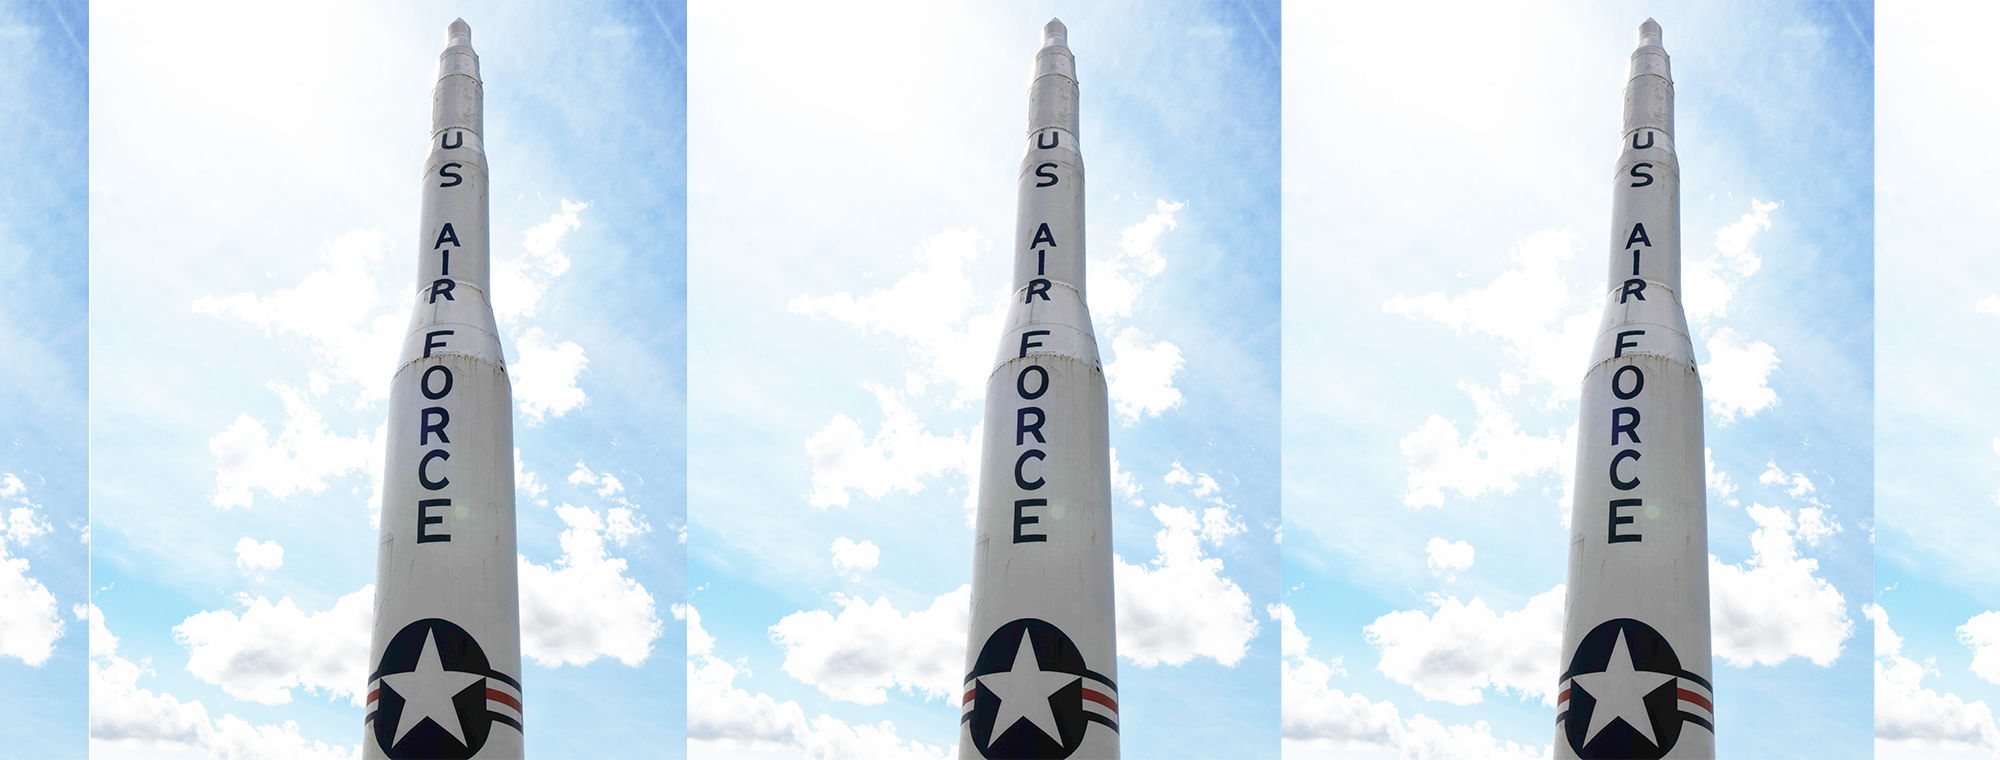 A Minuteman II ICBM replica stands at the front gate on Minot Air Force Base, North Dakota, June 10, 2019. Minot Air Force Base hold two thirds of the American nuclear forces. US Air Force photo by Senior Airman Dillon J. Audit